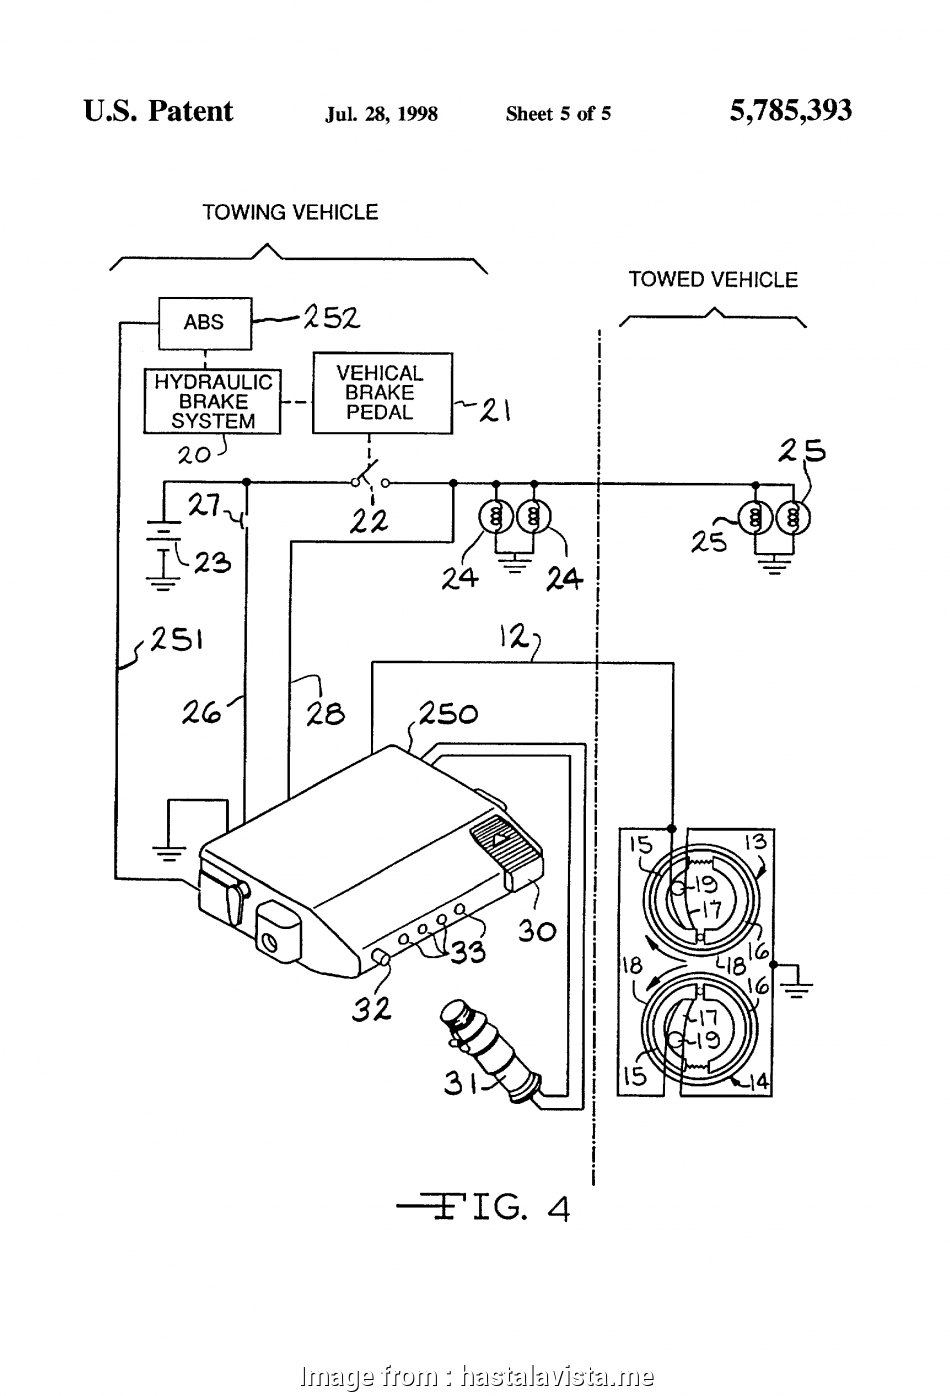 Electric Trailer Brake Wiring Diagram Nice Electric Trailer Brakes Wiring Diagram  7  And